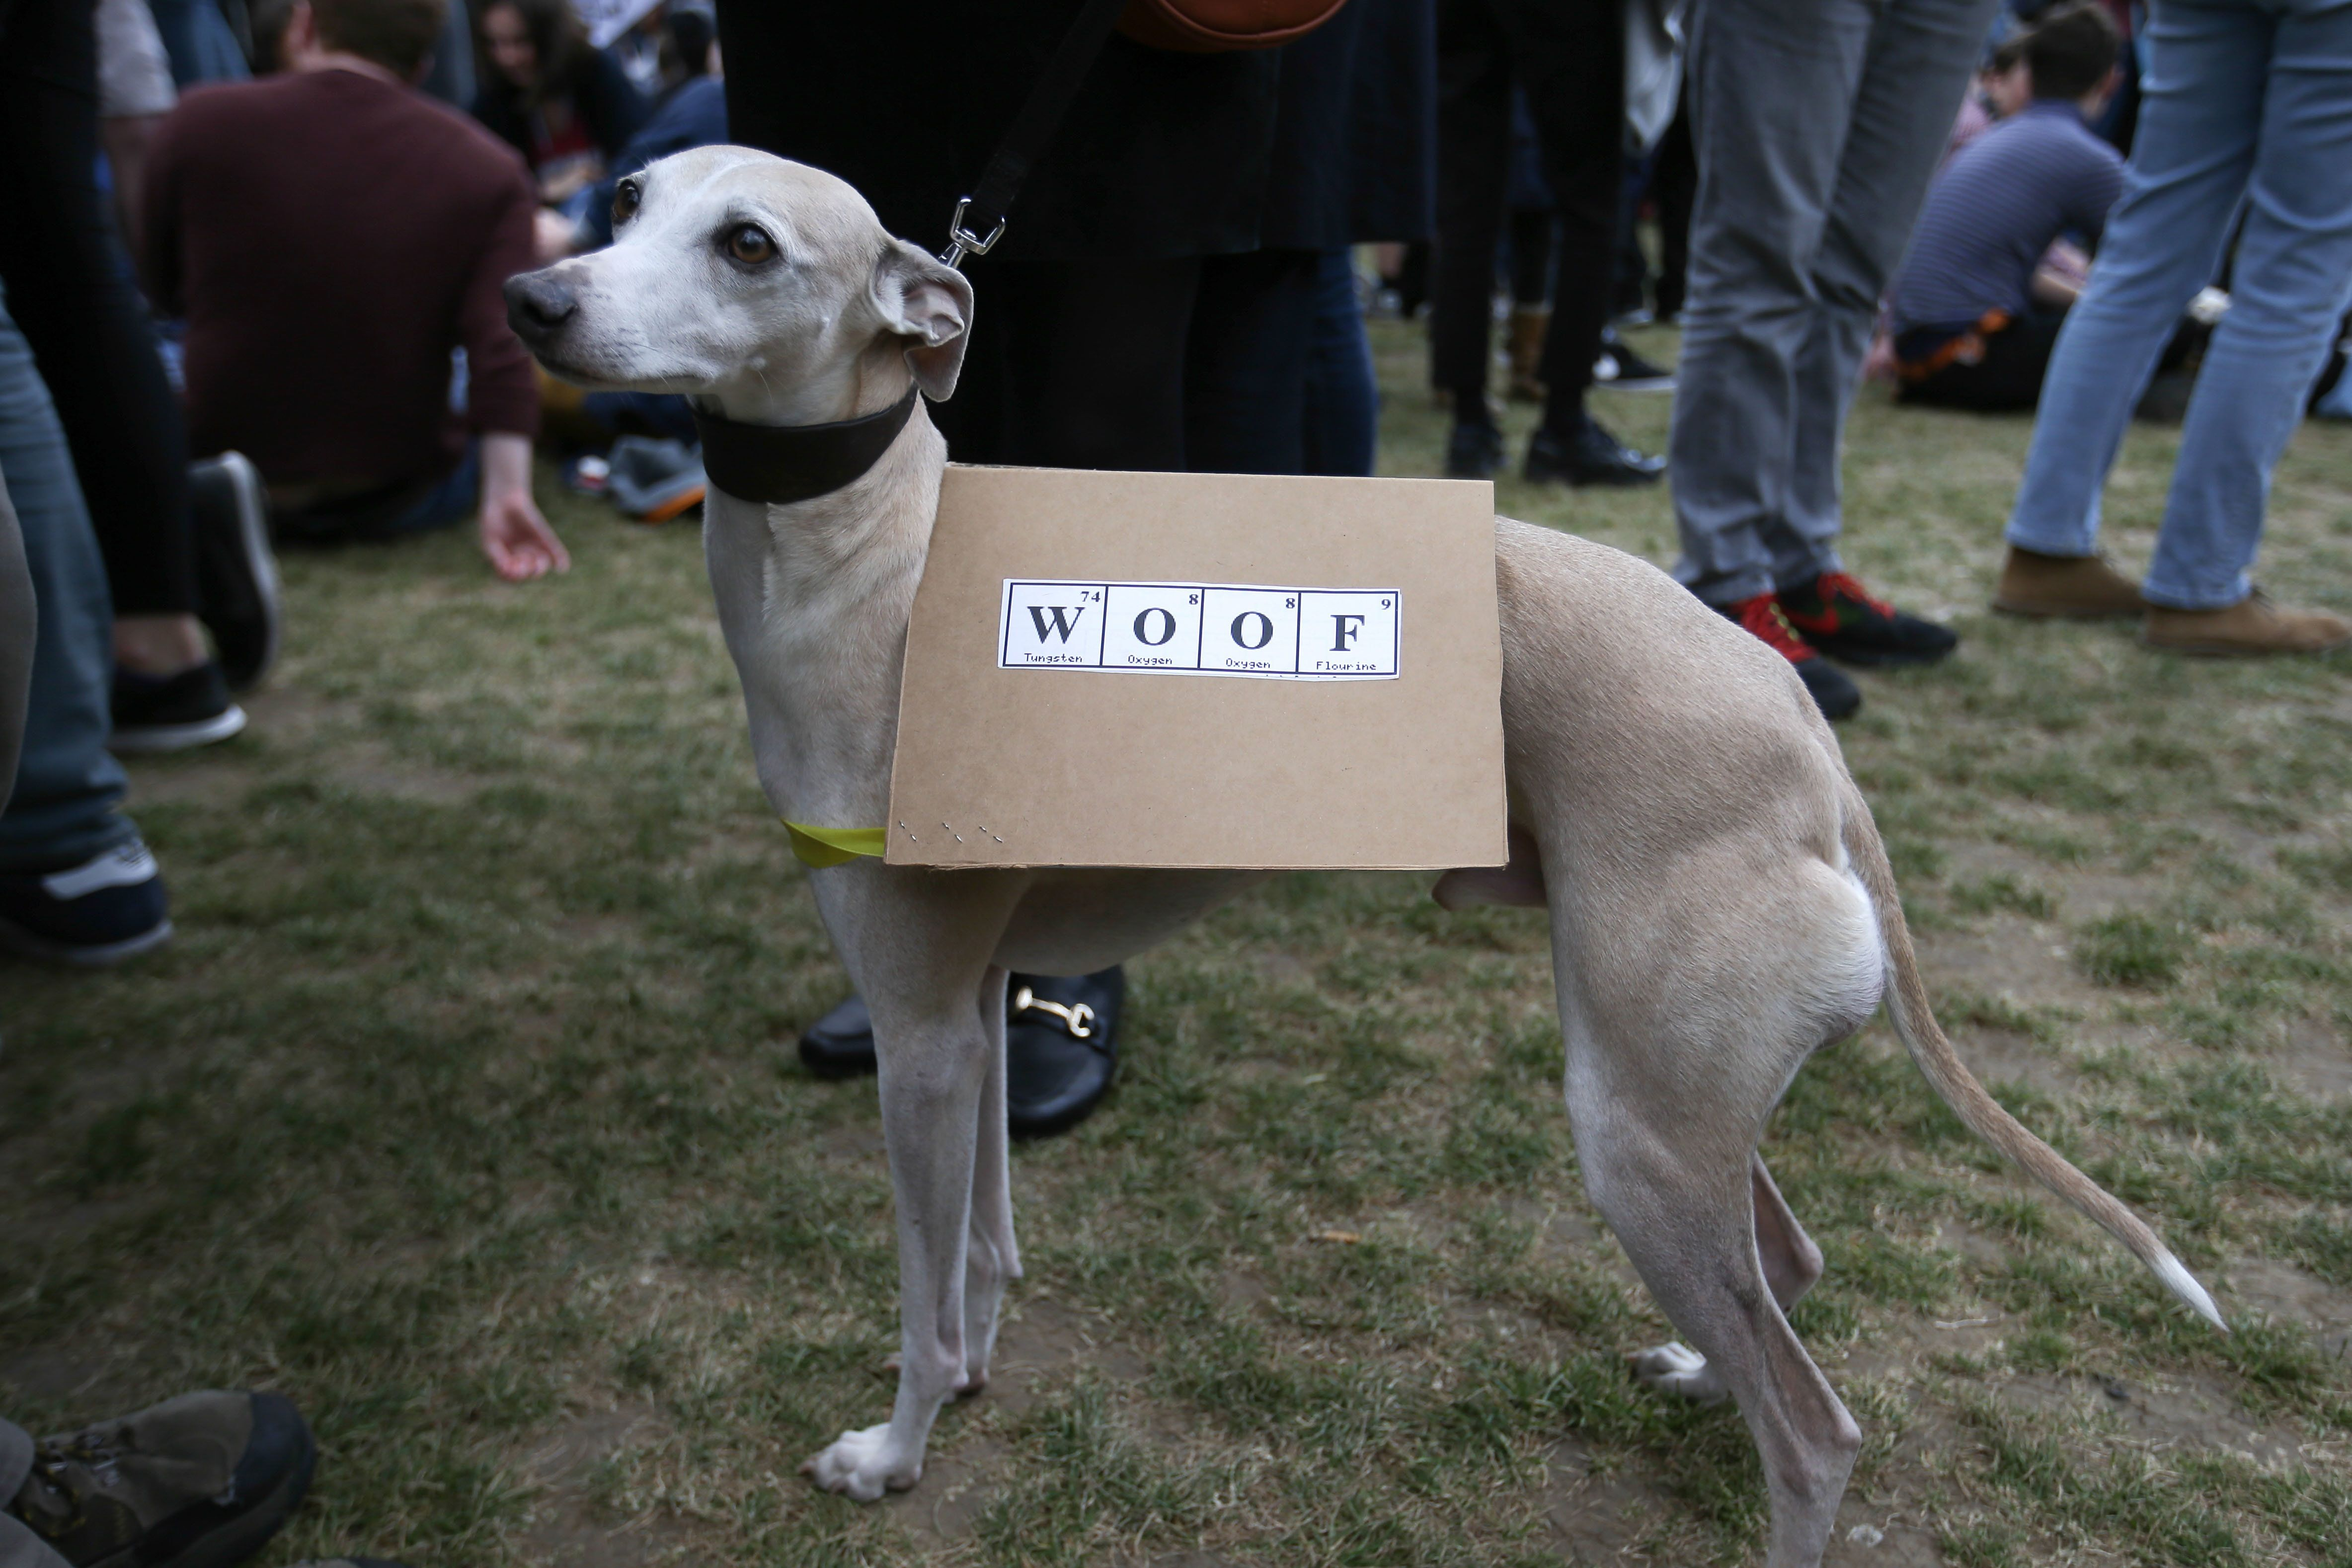 A science-supporting dog at the March for Science in London.